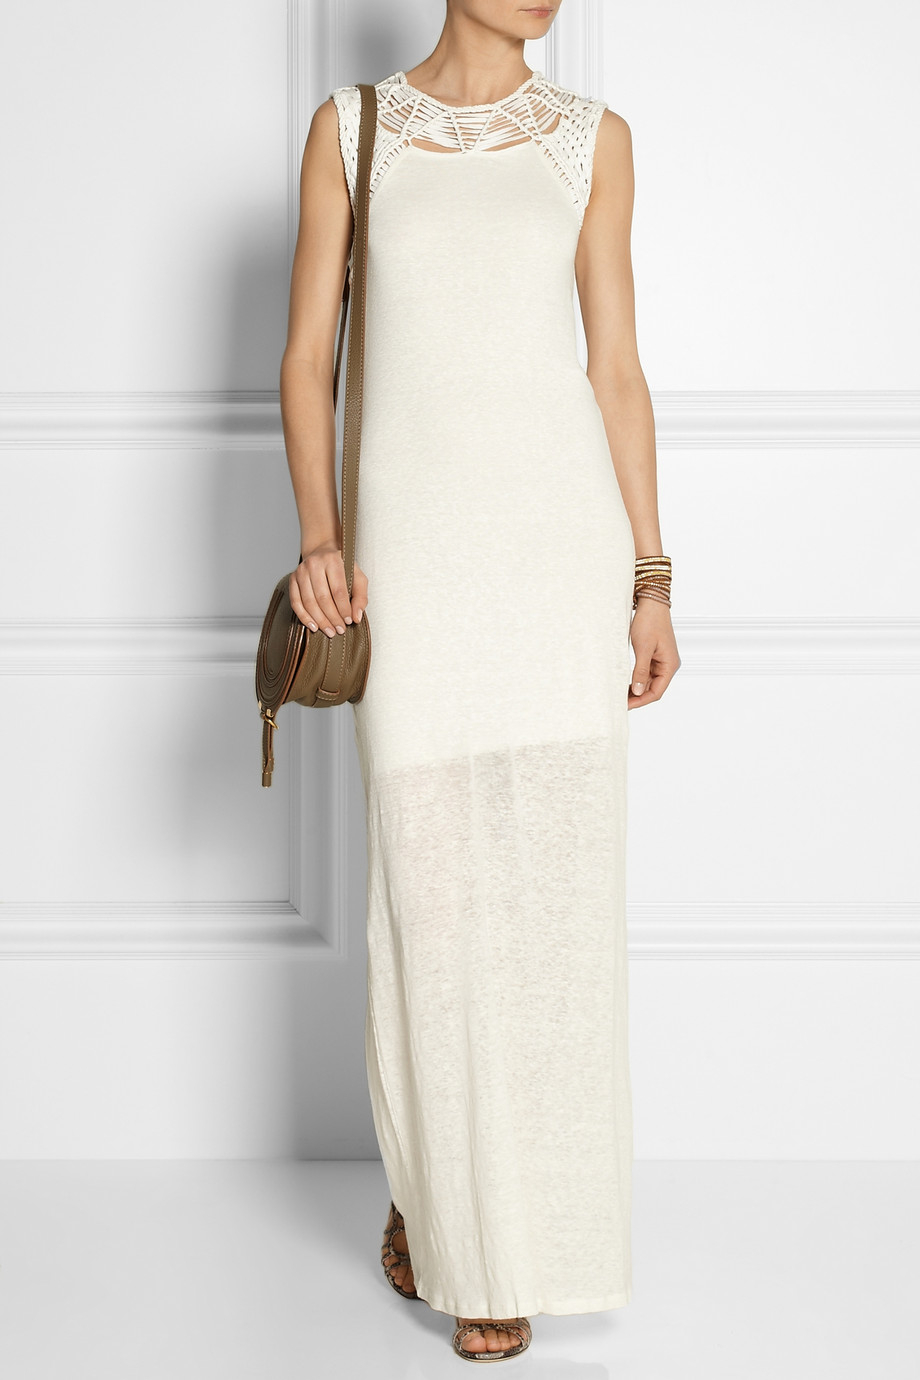 maje-white-fire-macrame-trimmed-linen-maxi-dress-product-1-18946177-4-686076735-normal.jpg